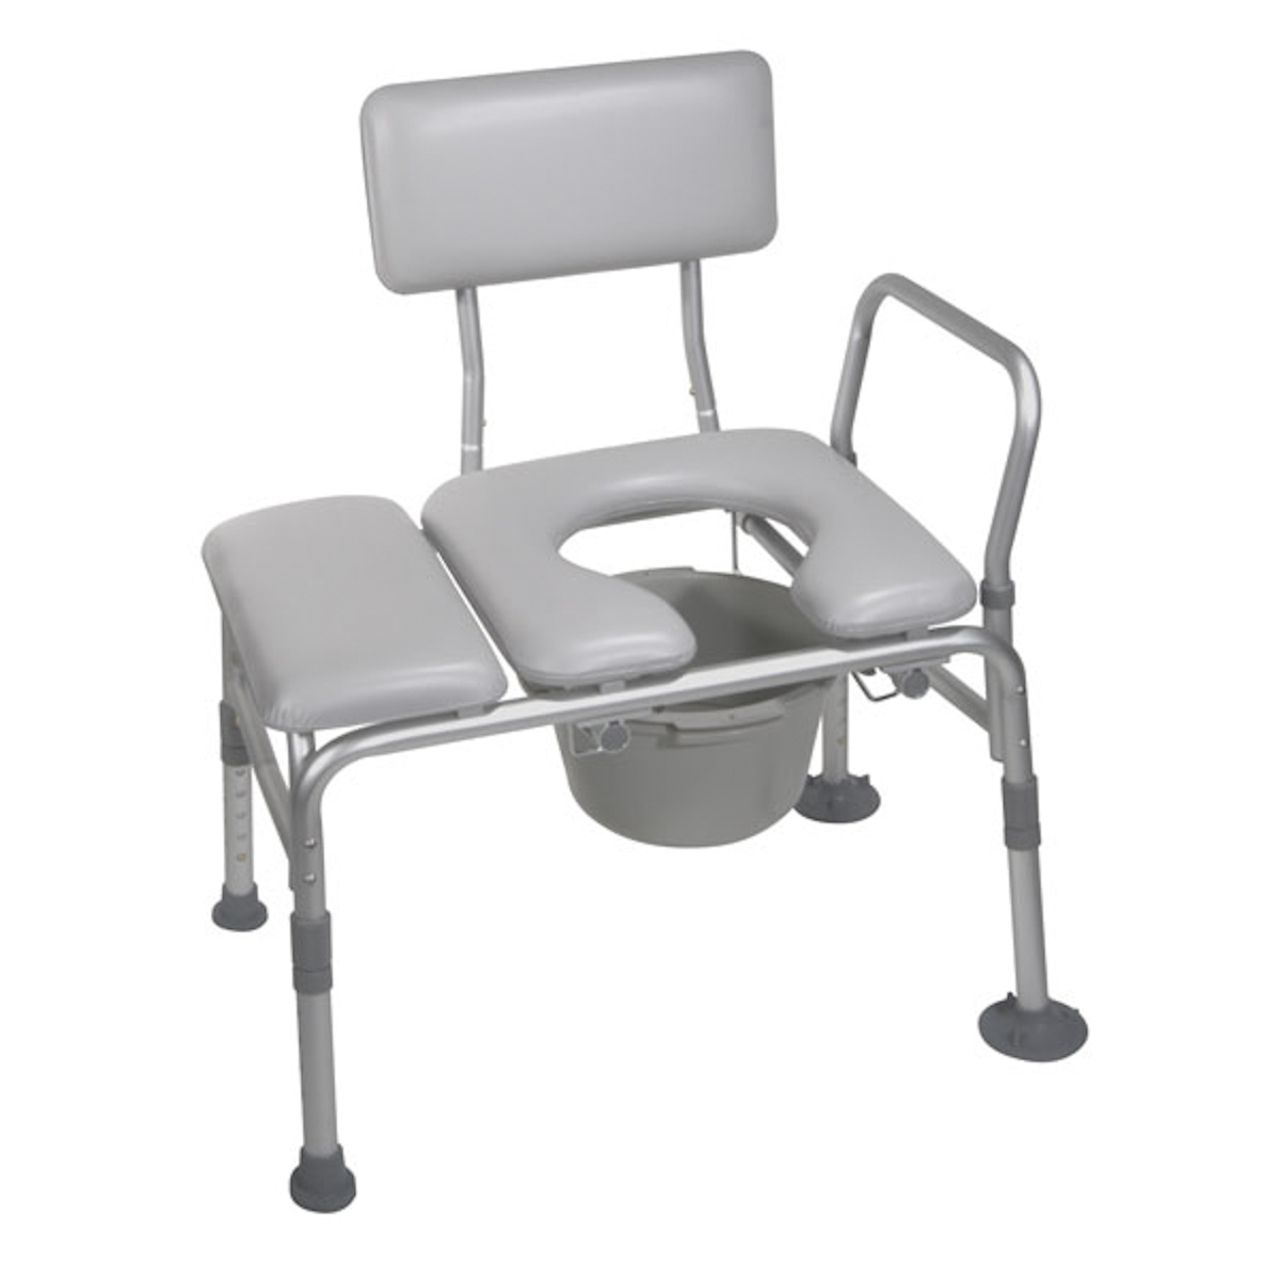 3 in 1 Commode (Bedside, Bariatric, Drop-Arm) Maintenance & Product ...